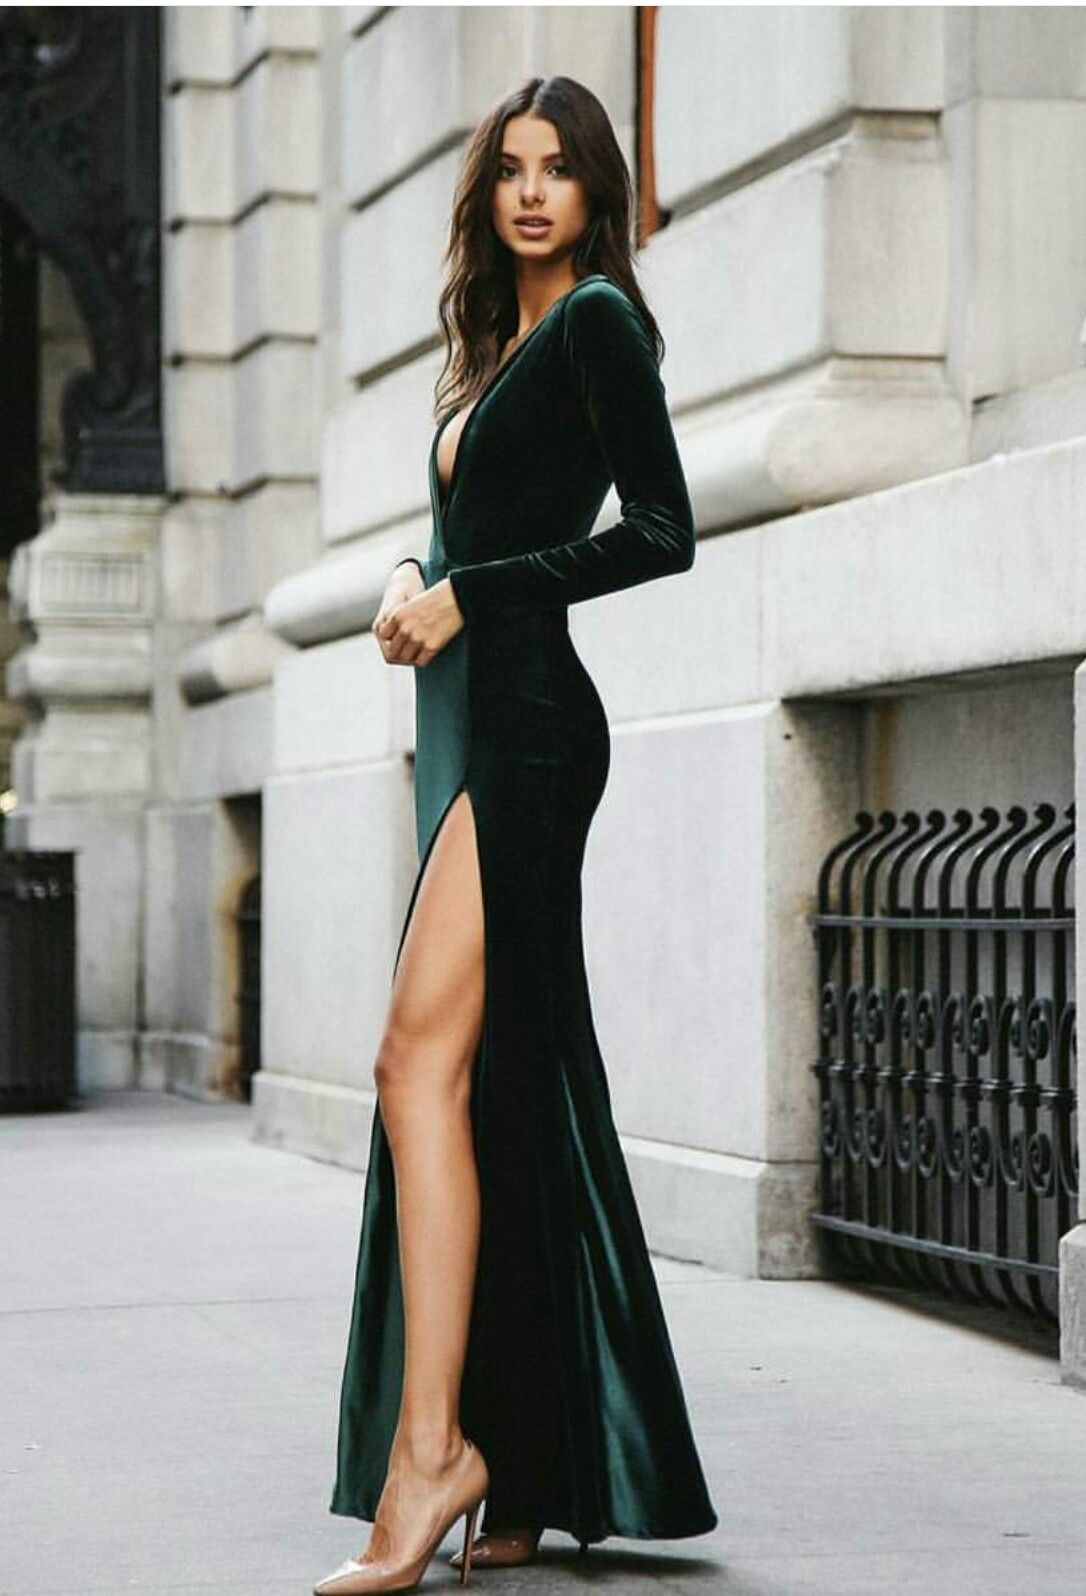 Fontaine Gown Emerald Green Bridesmaid Dresses Emerald Bridesmaid Dresses Green Velvet Dress [ 1088 x 800 Pixel ]